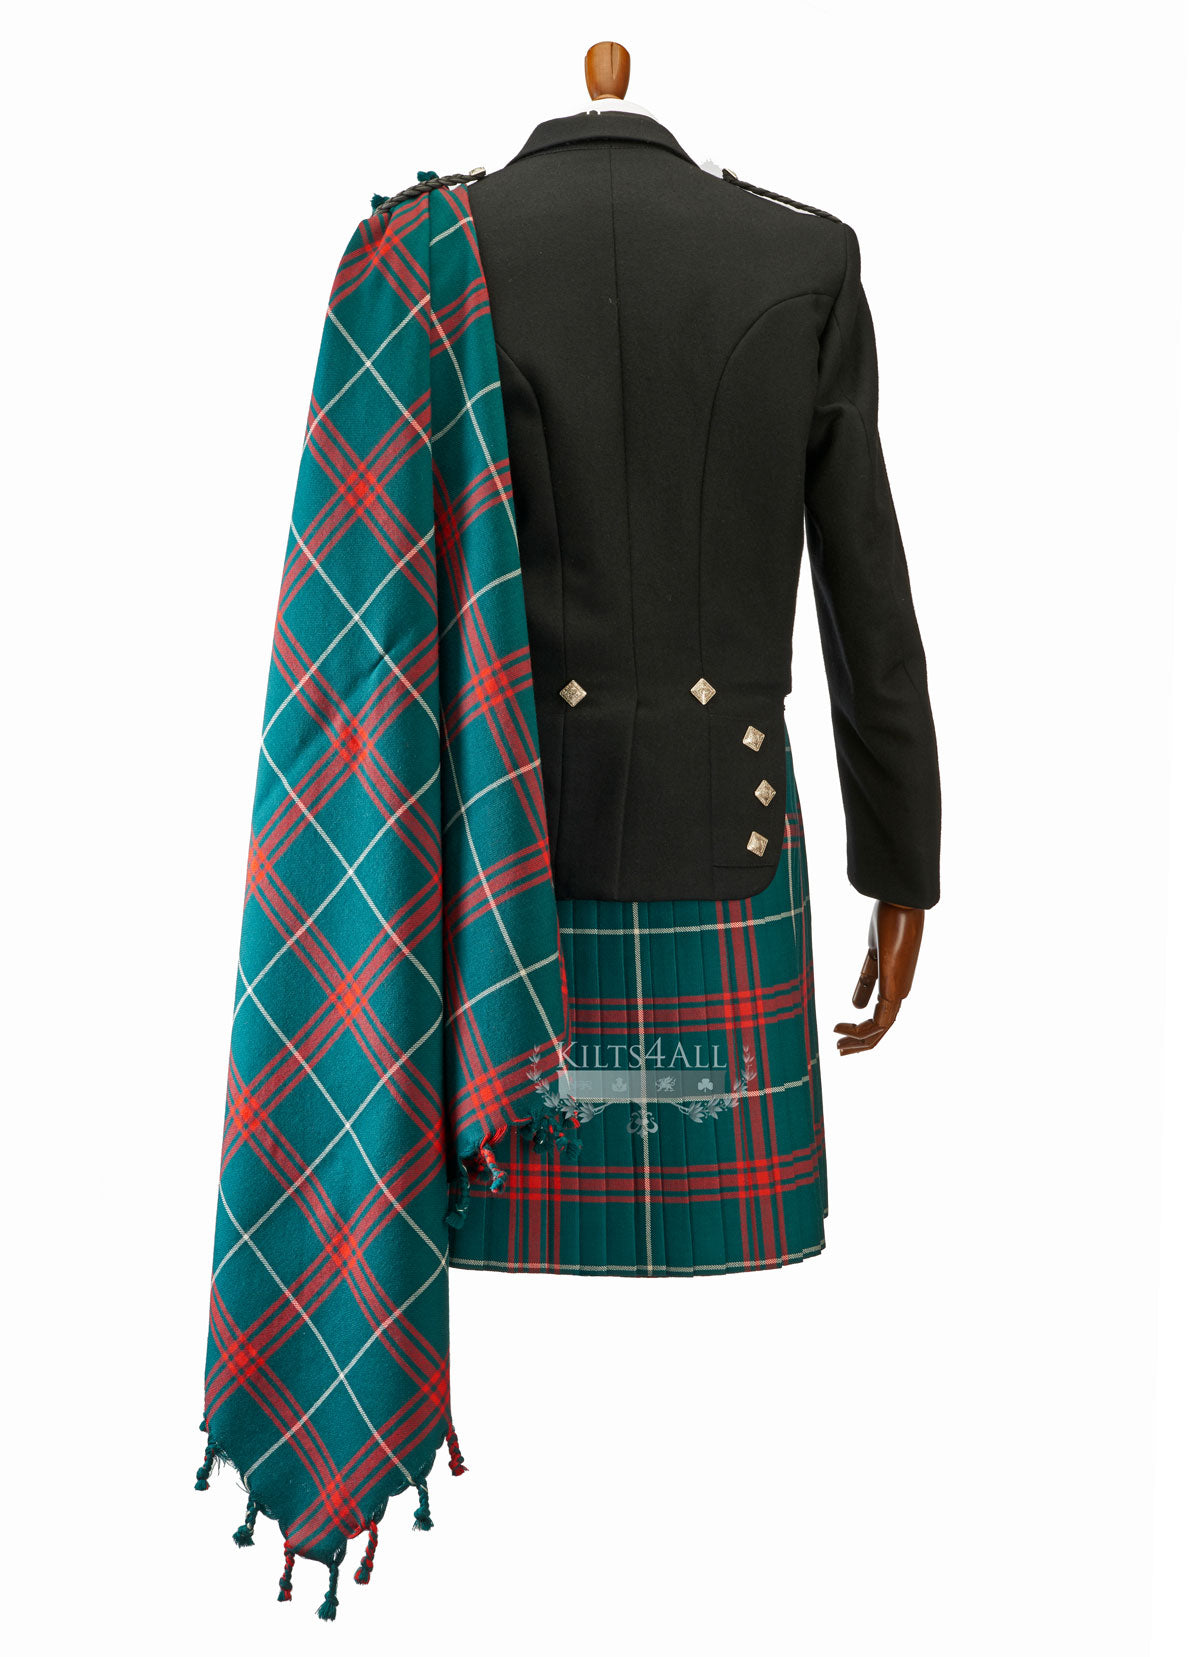 Mens Welsh National Tartan Kilt Outfit to Hire - Prince Charlie Jacket & 3 Button Waistcoat